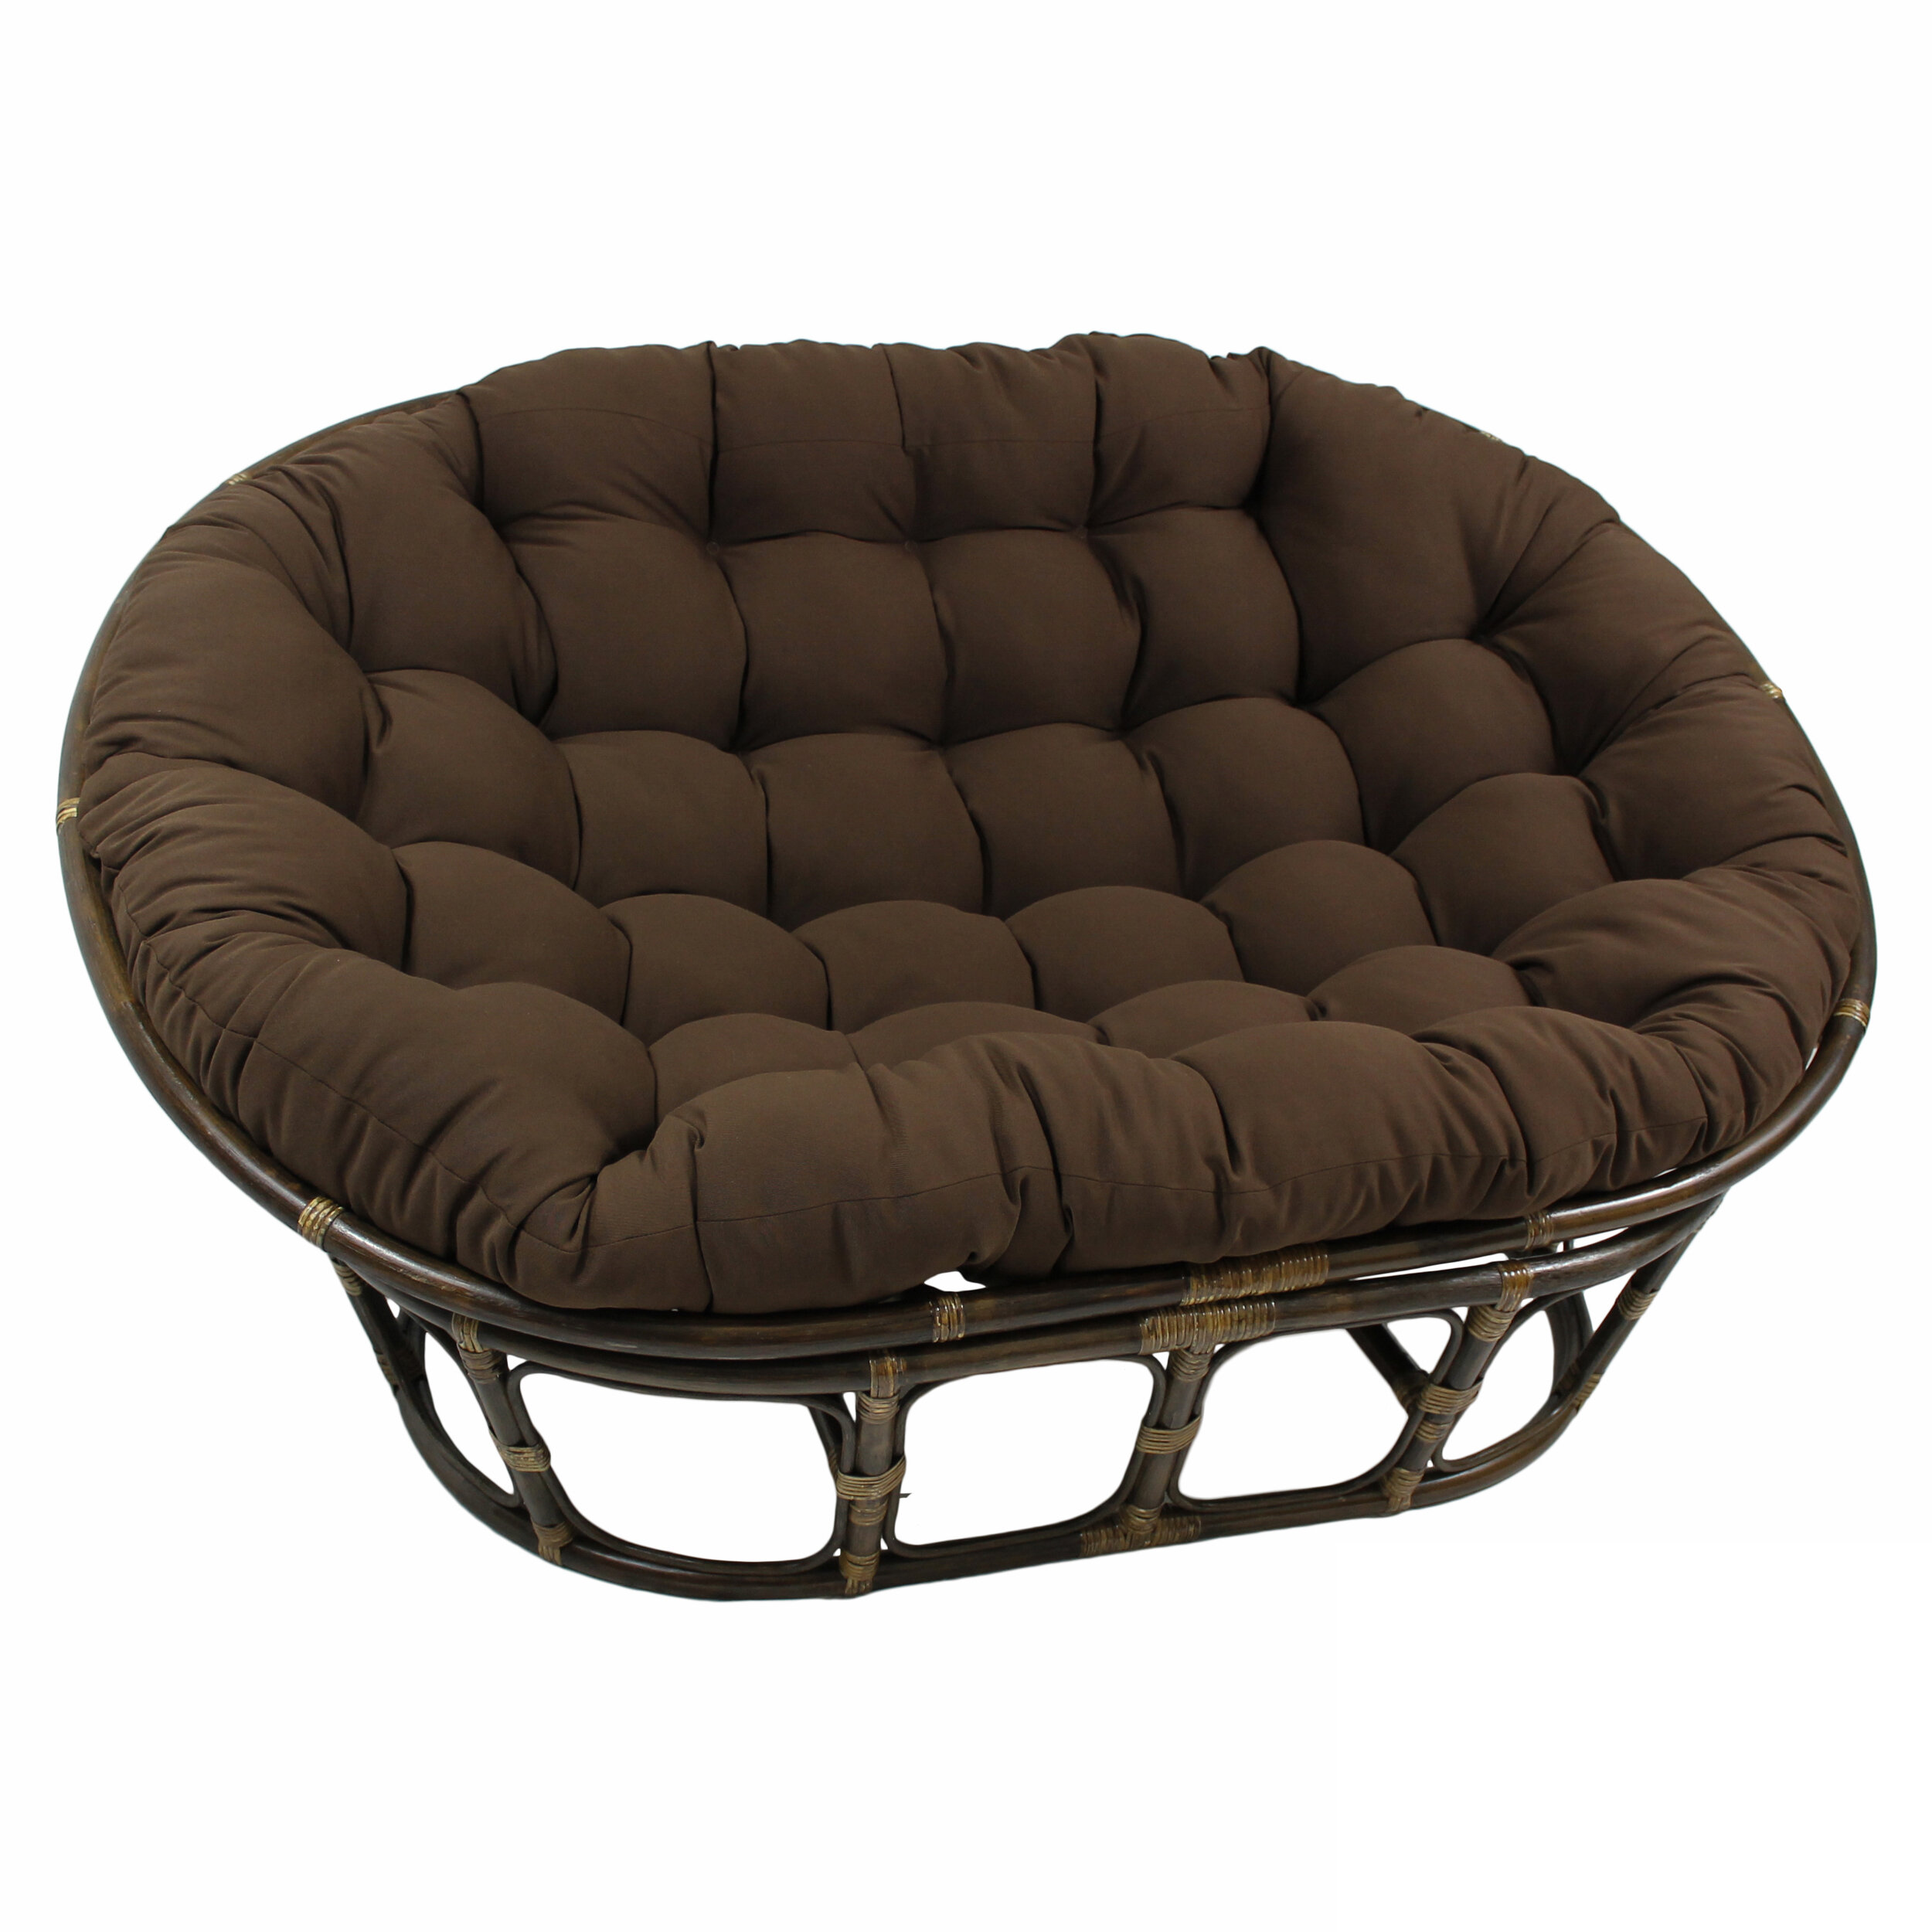 Charmant Bay Isle Home Bocanegra Double Papasan Chair U0026 Reviews | Wayfair